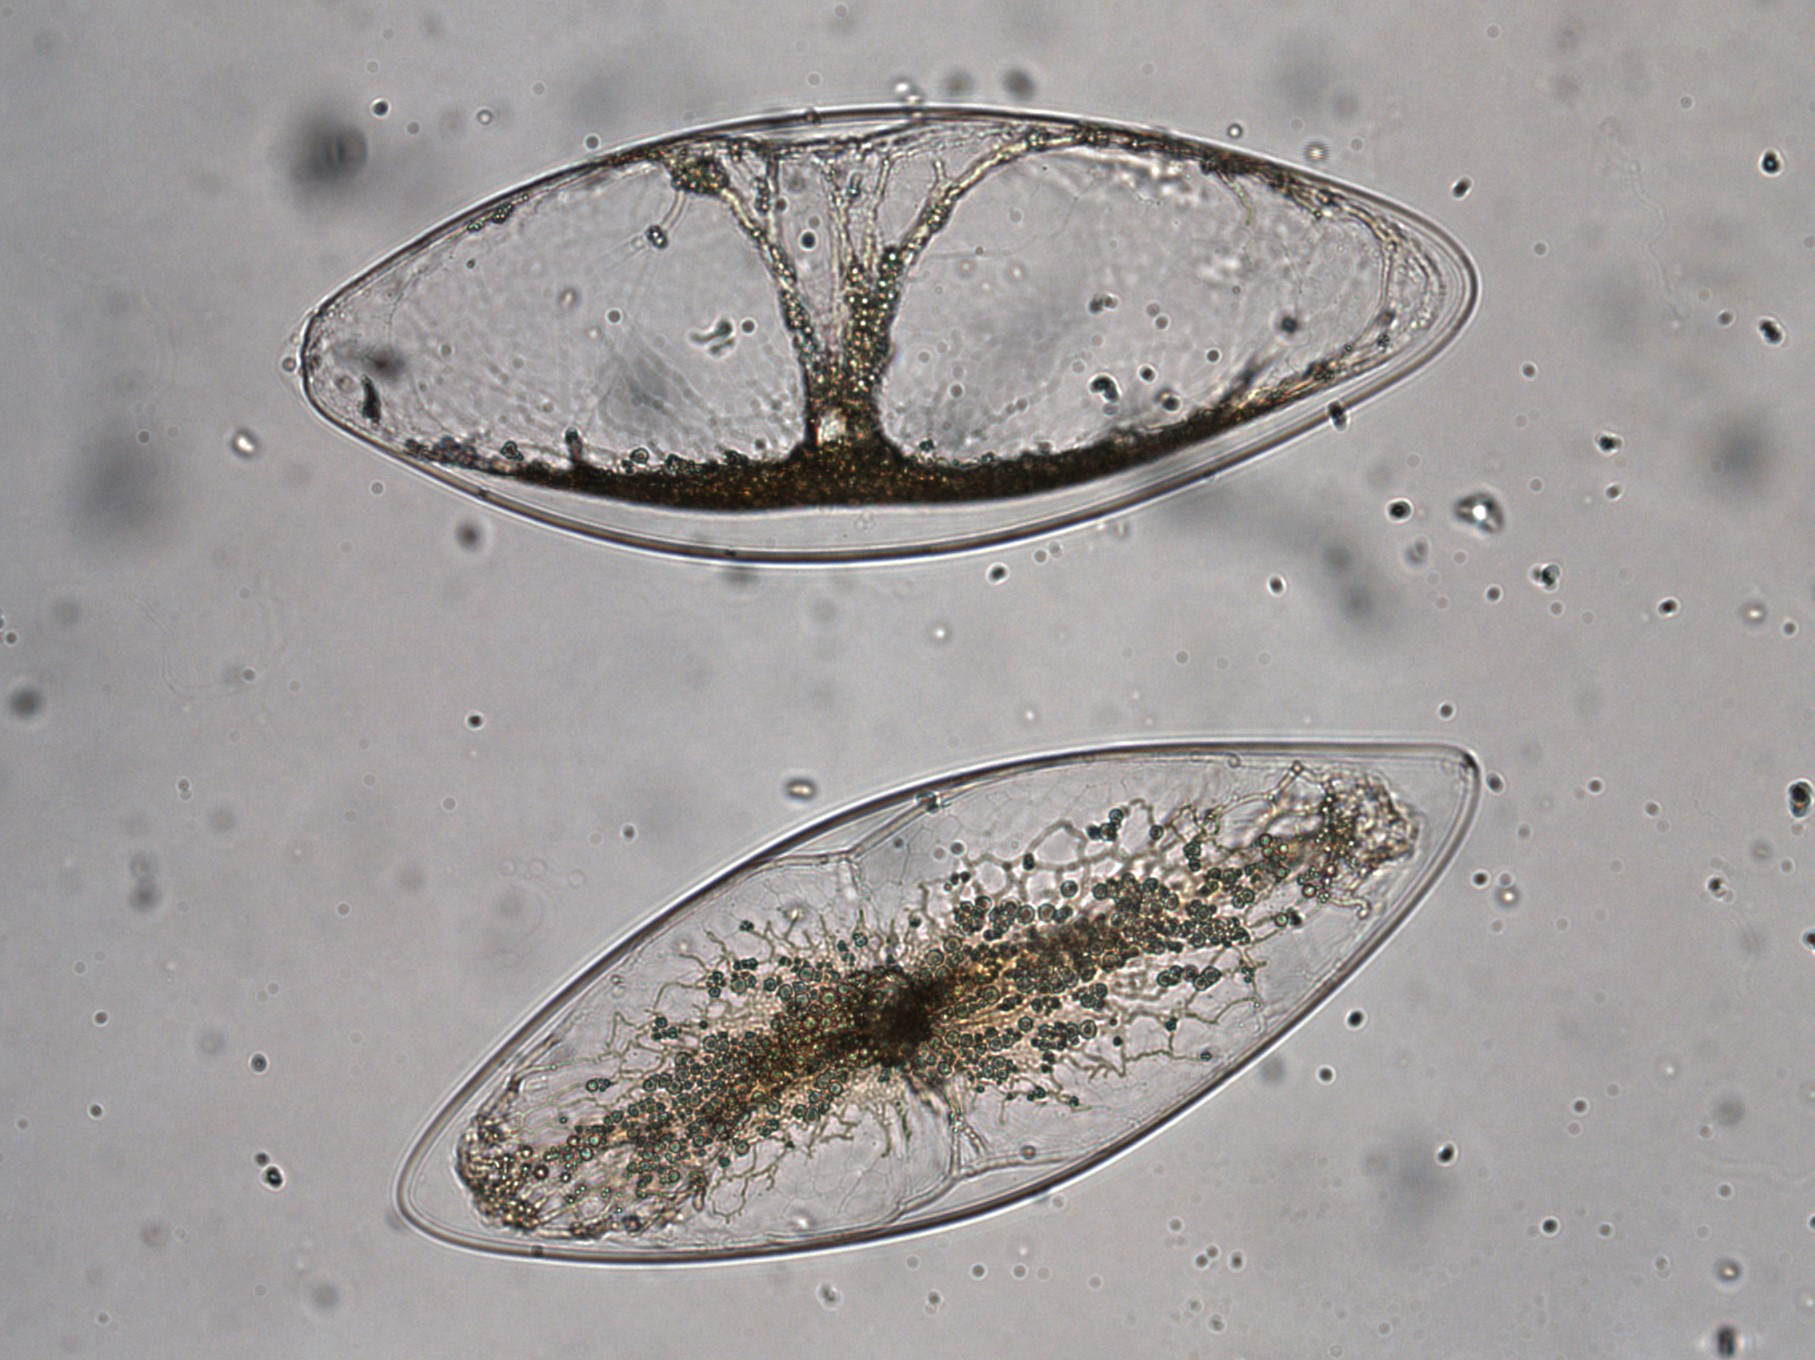 Dinoflagellate cells